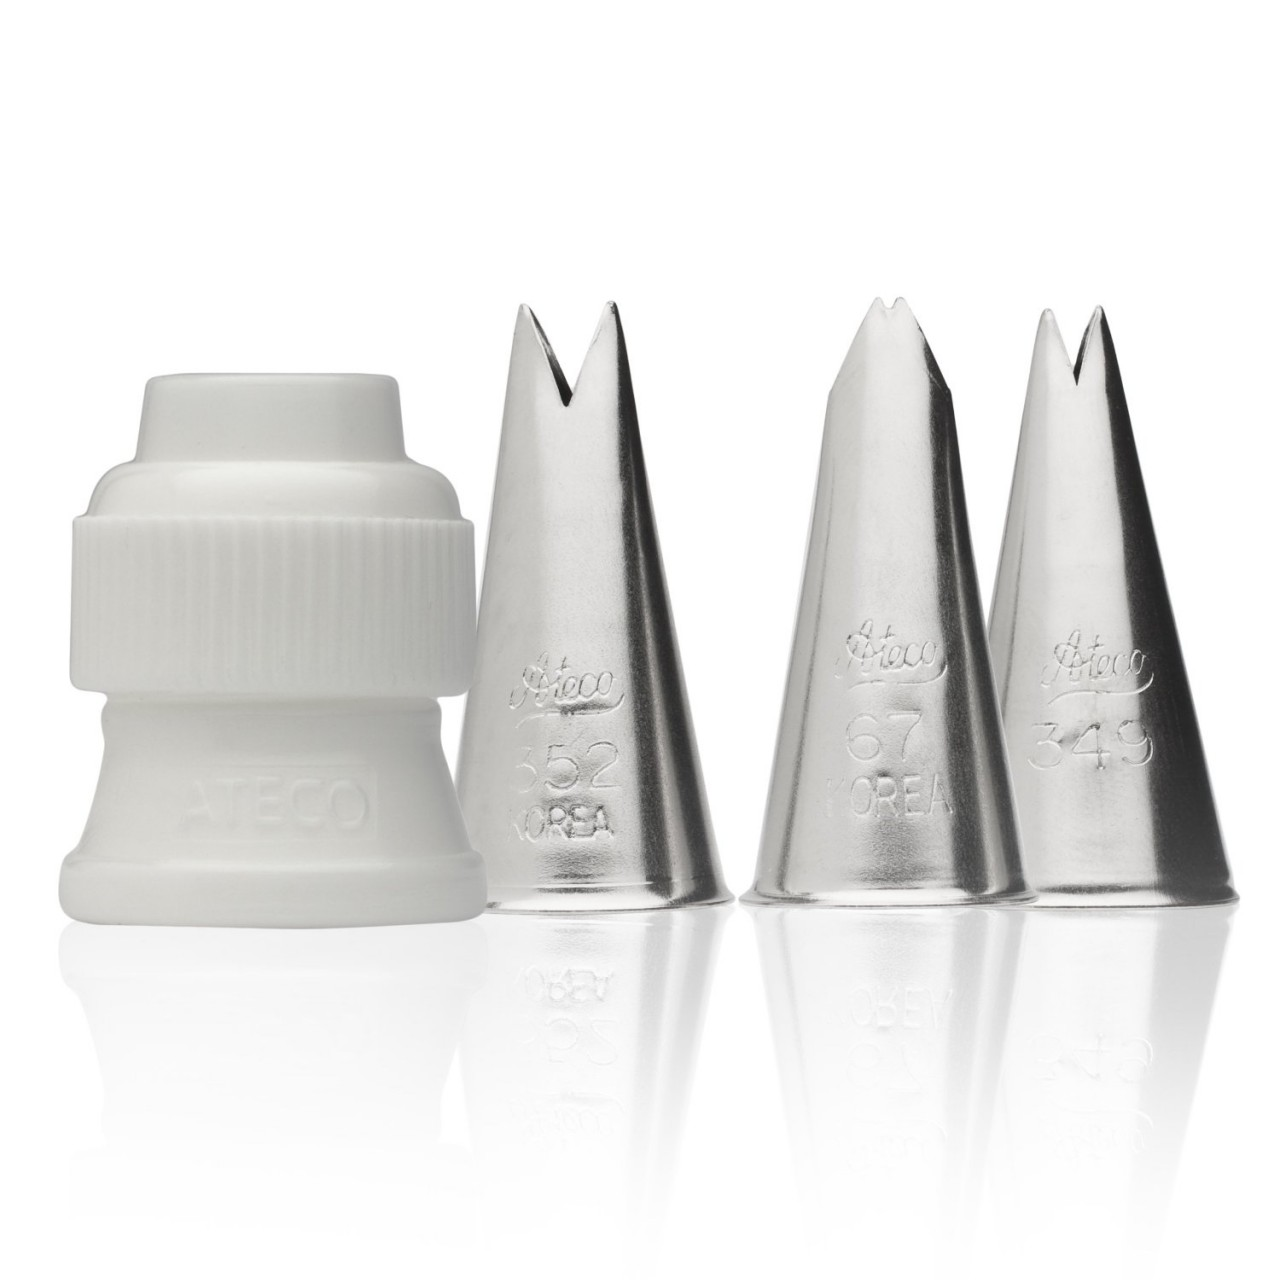 ATECO Leaf Tube Set - 4 Pieces